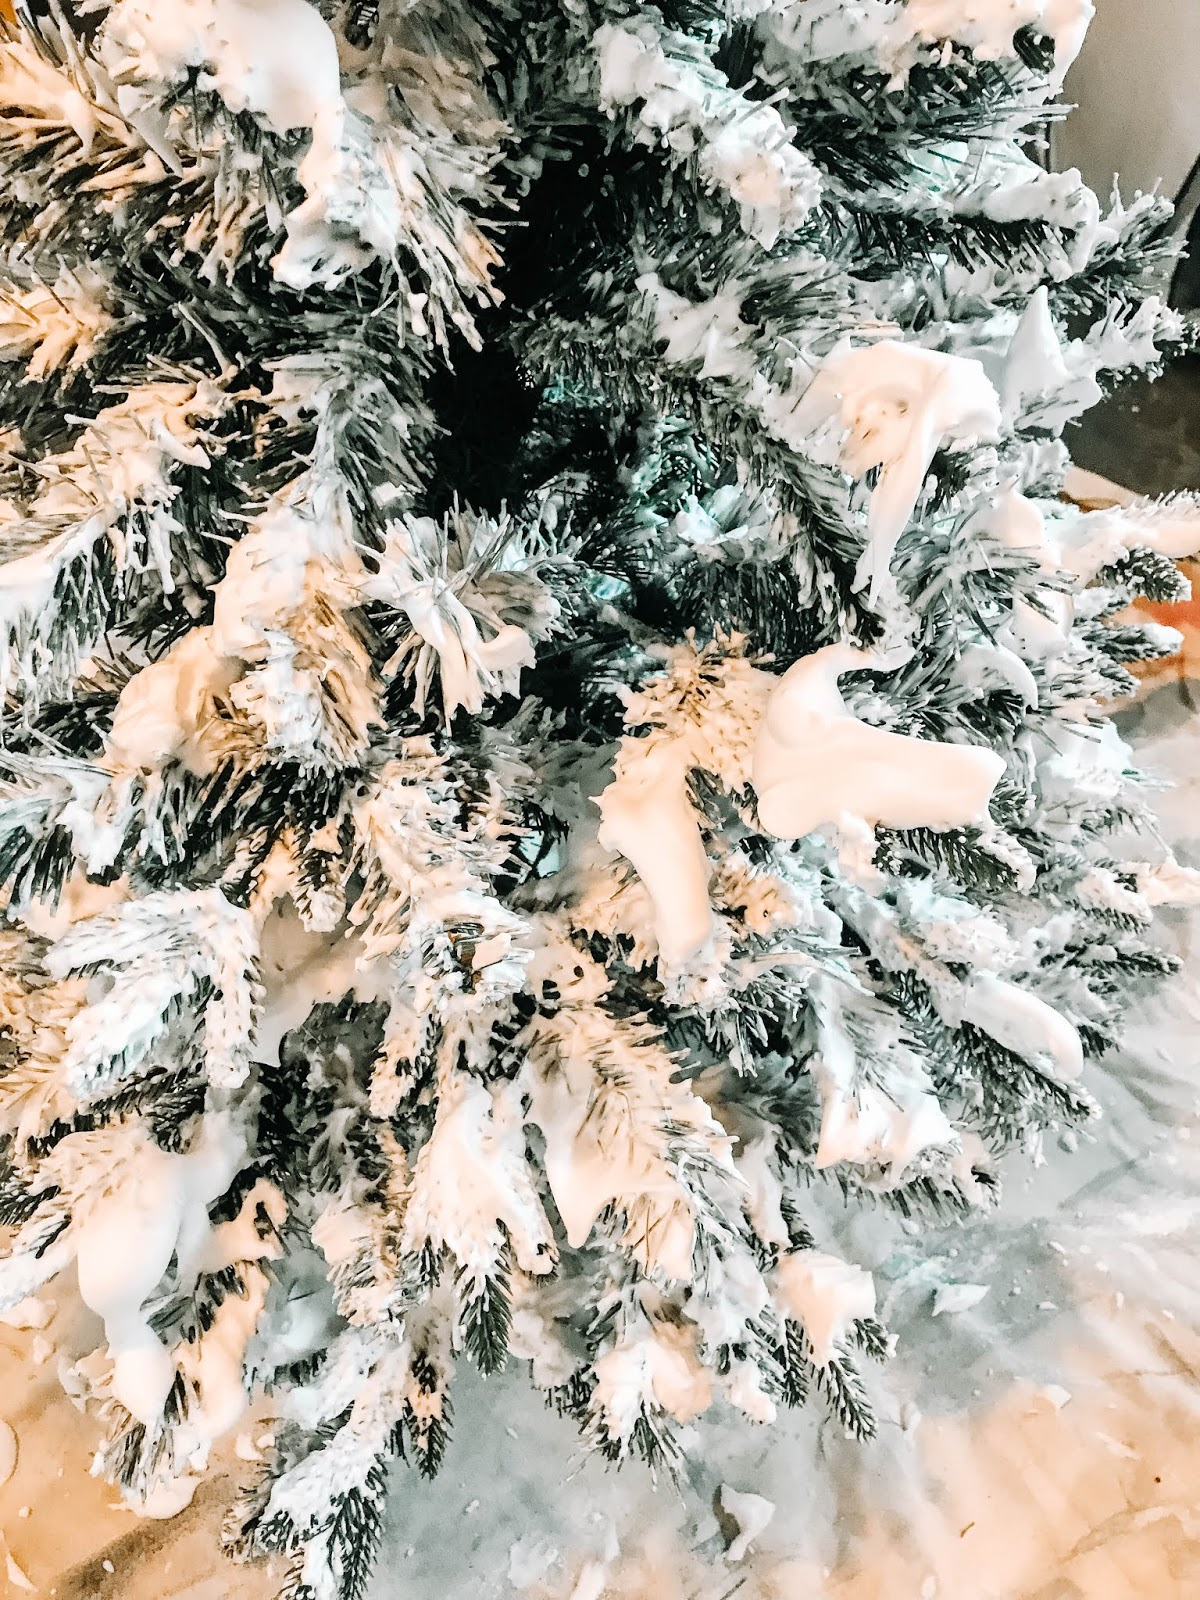 DIY Flocked Christmas Tree Using Supplies from the Dollar Store